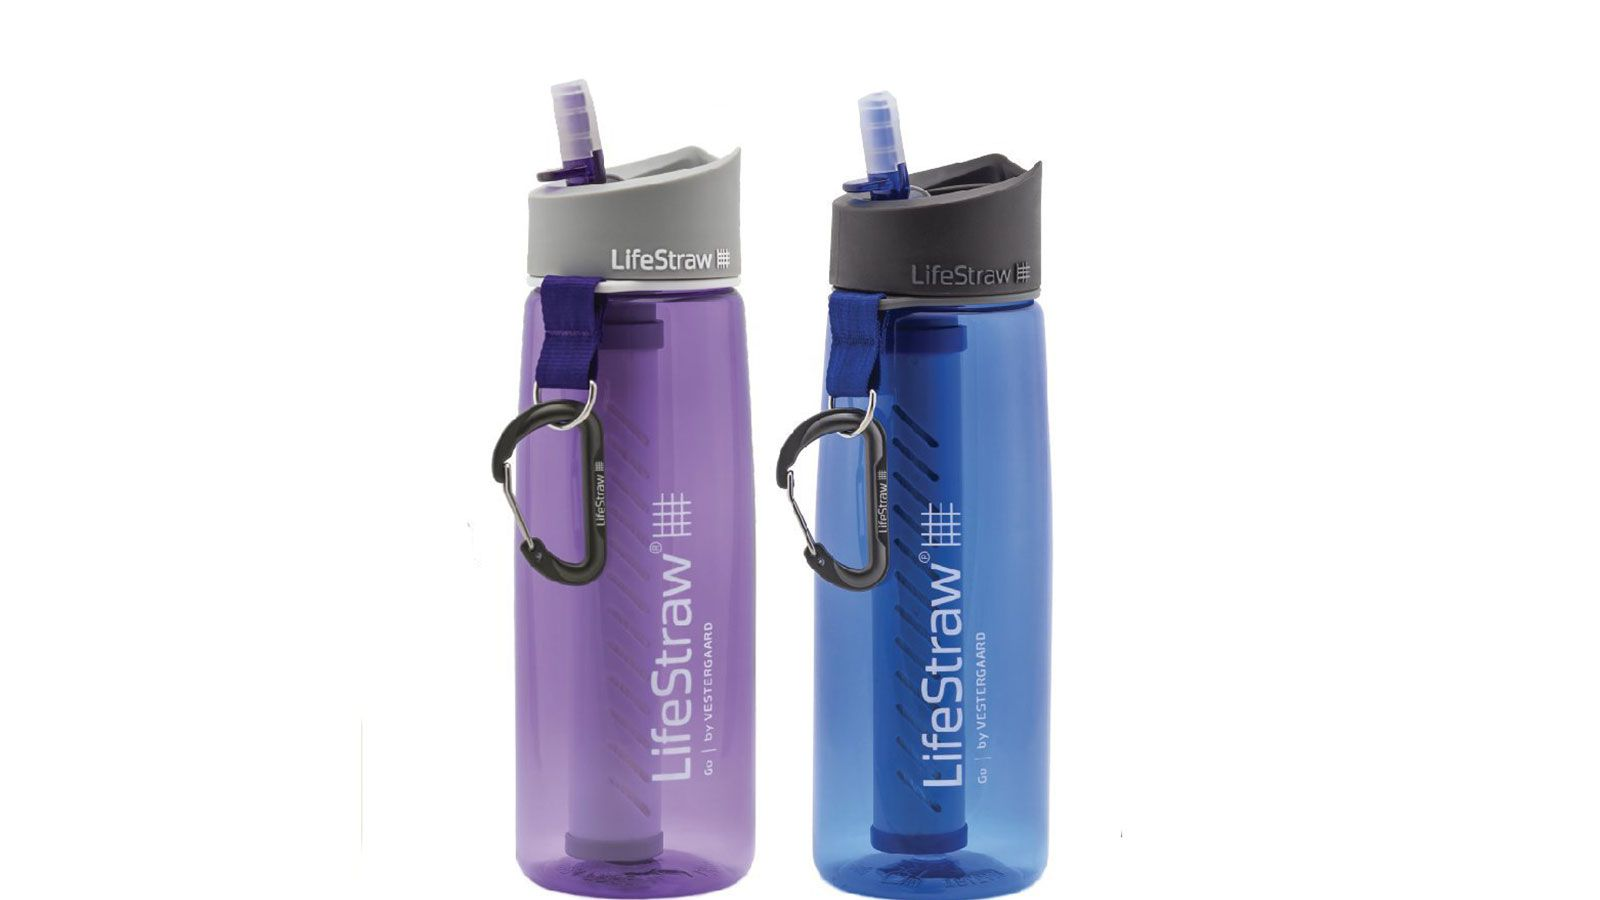 LifeStraw Go Water Filter Bottles (Two-Pack)